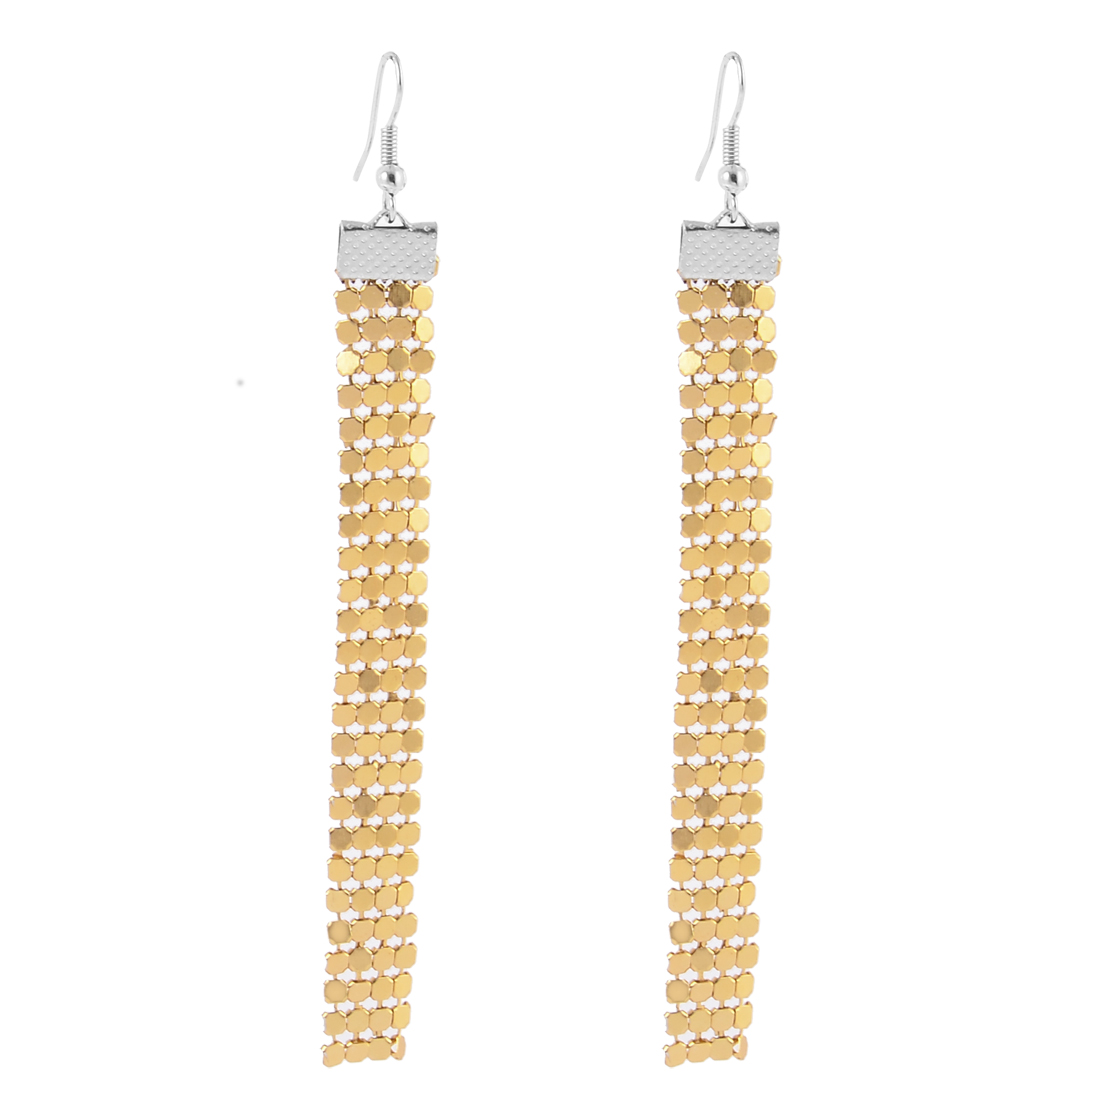 Lady Fashion Jewelry Long Shiny Sequin Cluster Dangle Earrings Pair Gold Tone